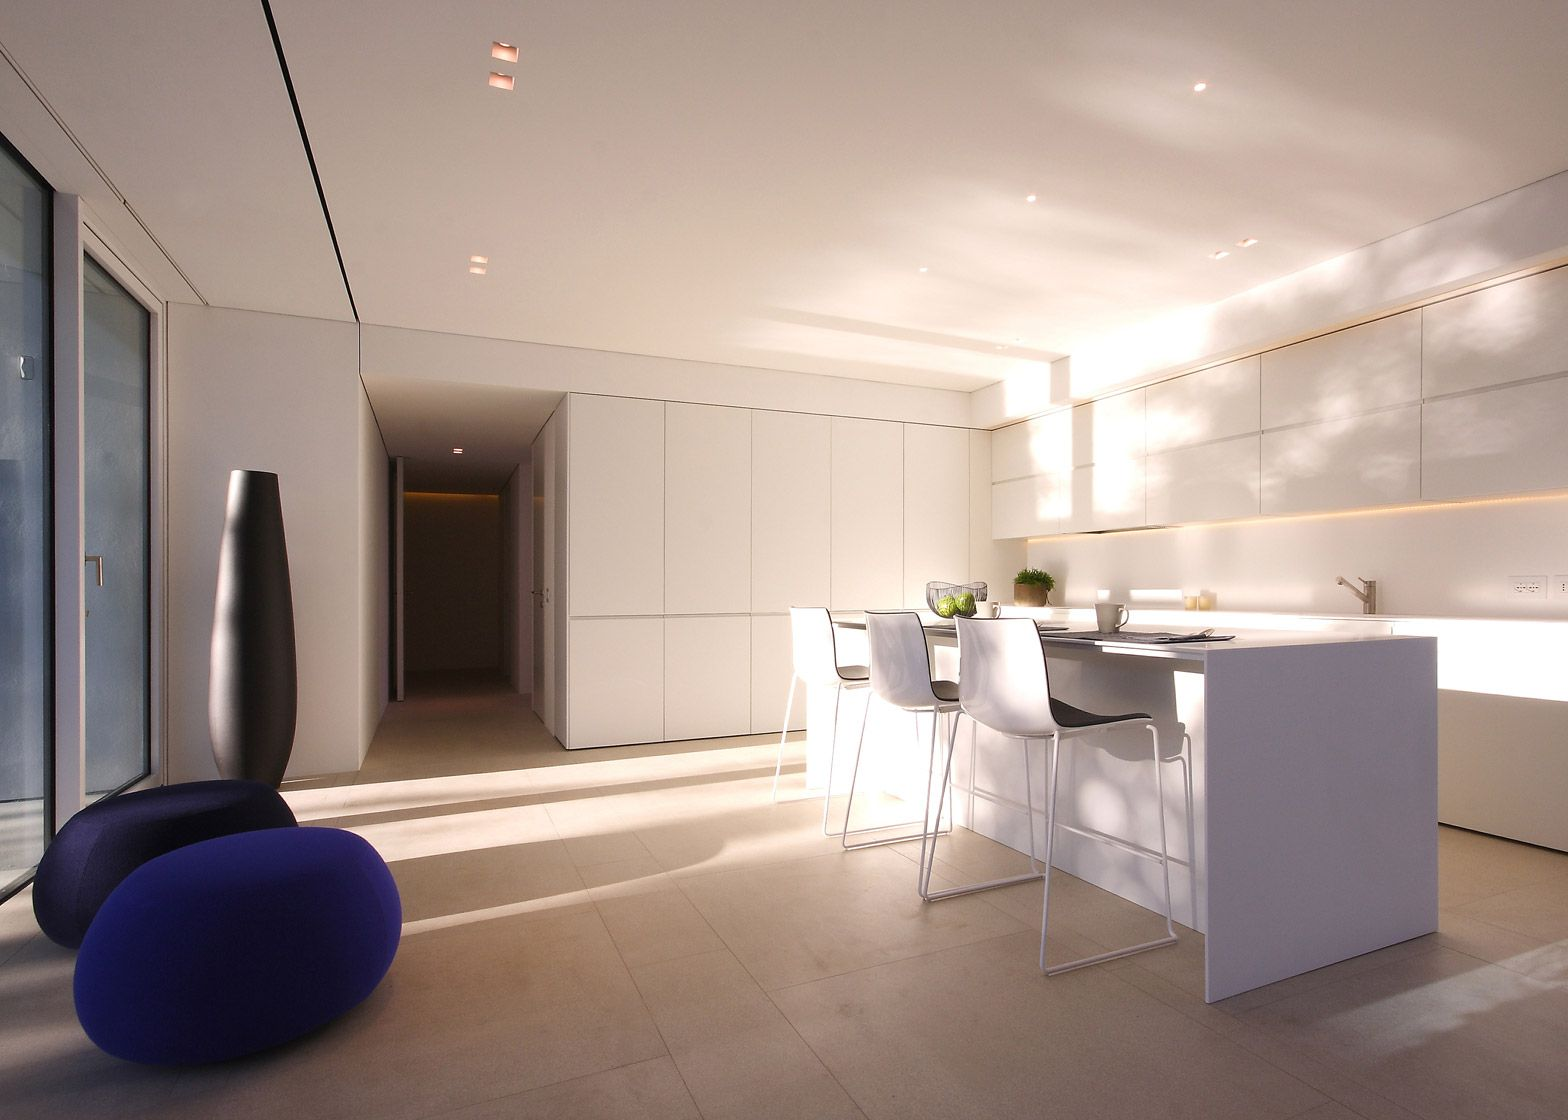 images about kitchens on pinterest smart kitchen in london